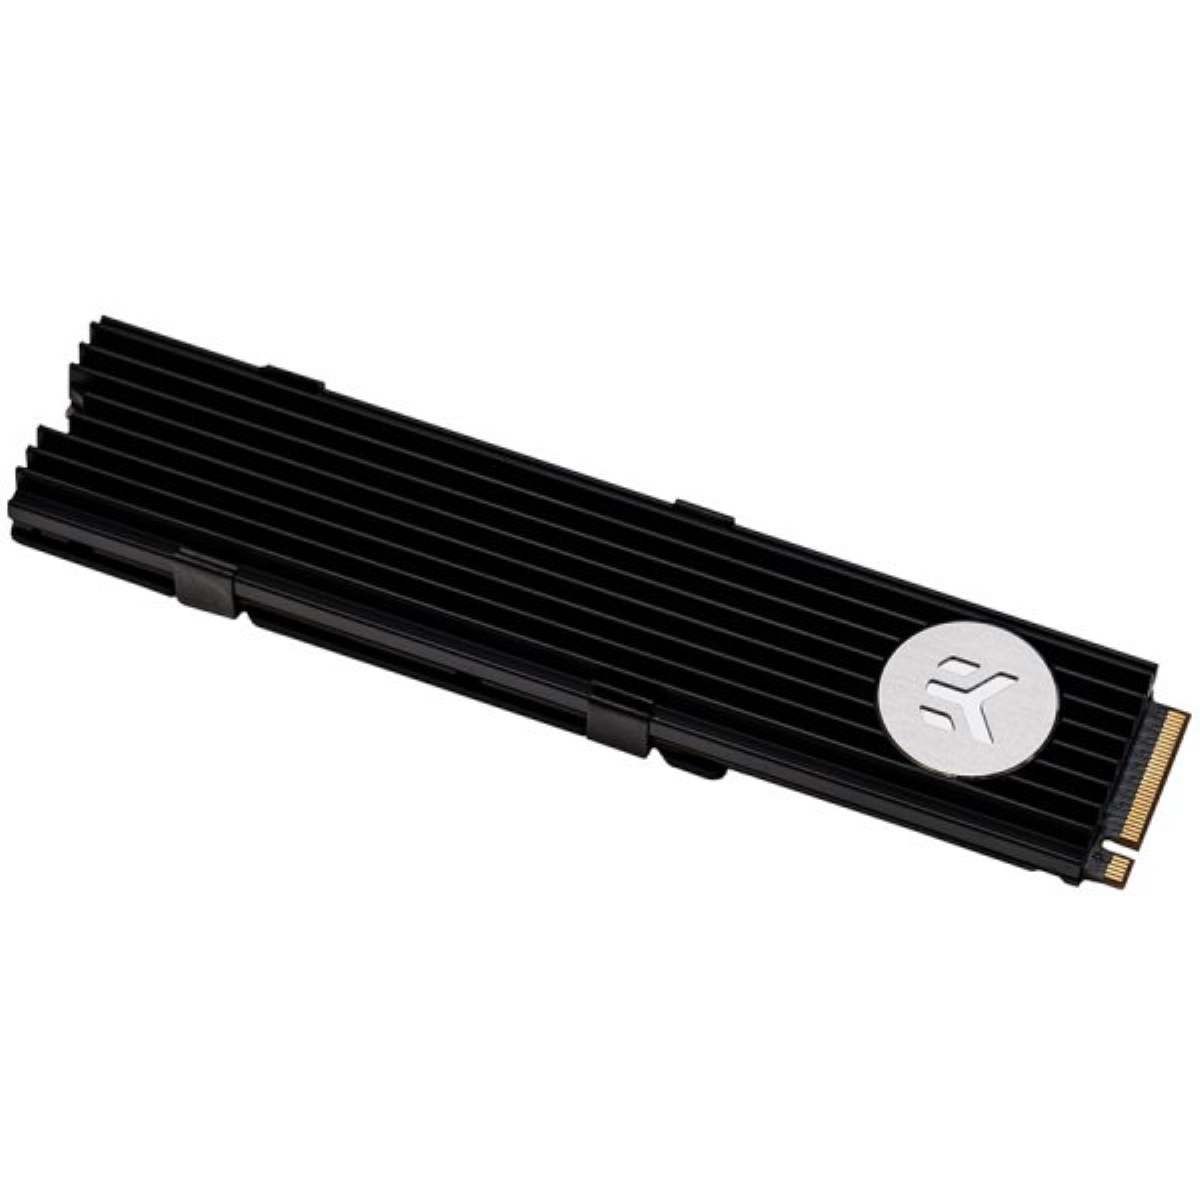 Охладител за SSD EK-M.2 Heatsink for the Intel Optane SSD 905P - Black